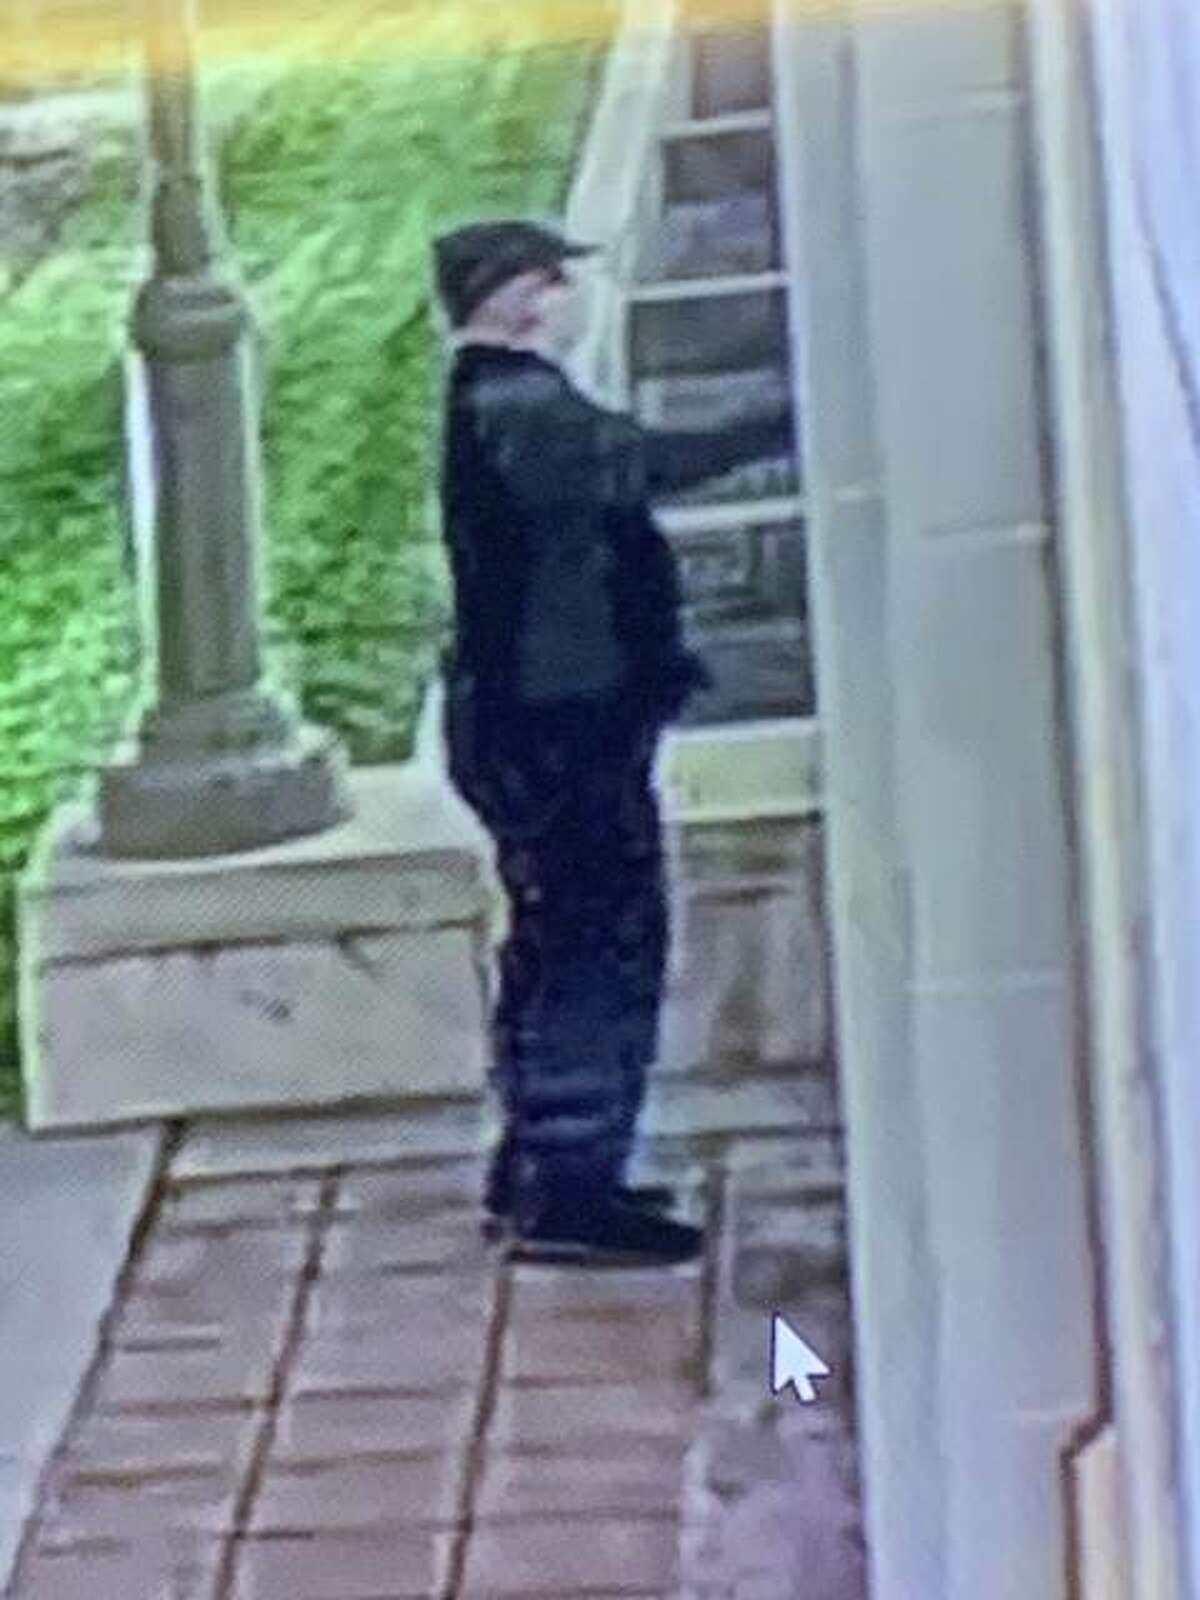 The Edwardsville Police Department is seeking assistance with identifying a subject in an ongoing investigation. At about 4:25 a.m. Friday, Nov. 6, the Madison County Court House at 155 N. Main St., Edwardsville, was damaged by someone spray painting the outside of the building. Anyone able to identify this subject or who has information regarding this incident is asked to contact Detective Sergeant Jones of the Edwardsville Police Department at 618-656-2131.